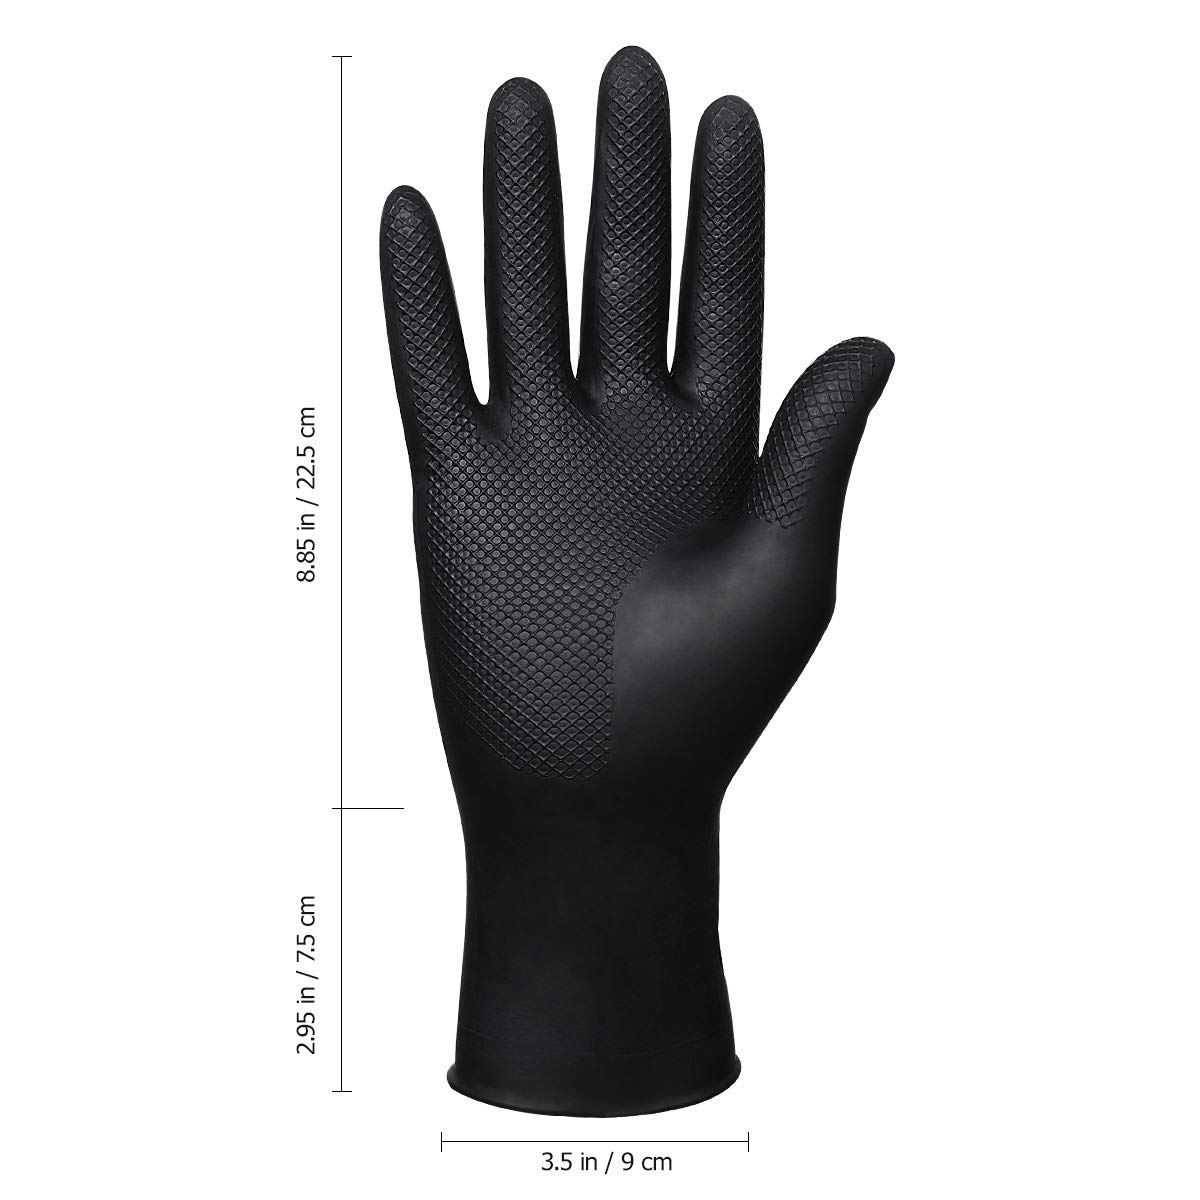 Hair Dye Gloves Black Reusable Rubber Gloves Hair Coloring Accessories for Hair Salon Hair Dyeing 10Pcs